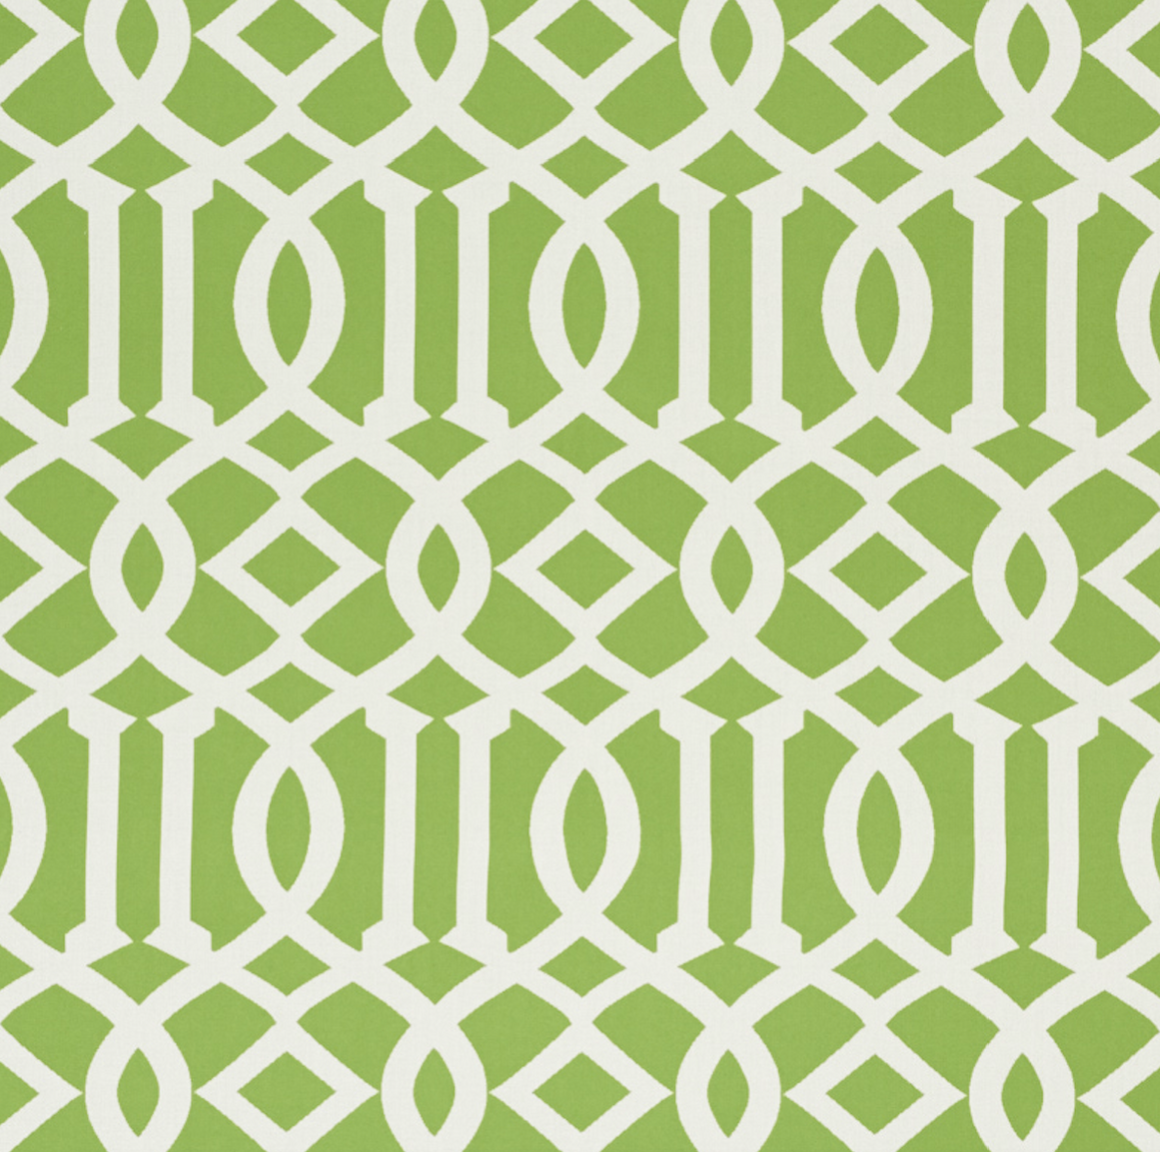 Imperial Trellis Fabric